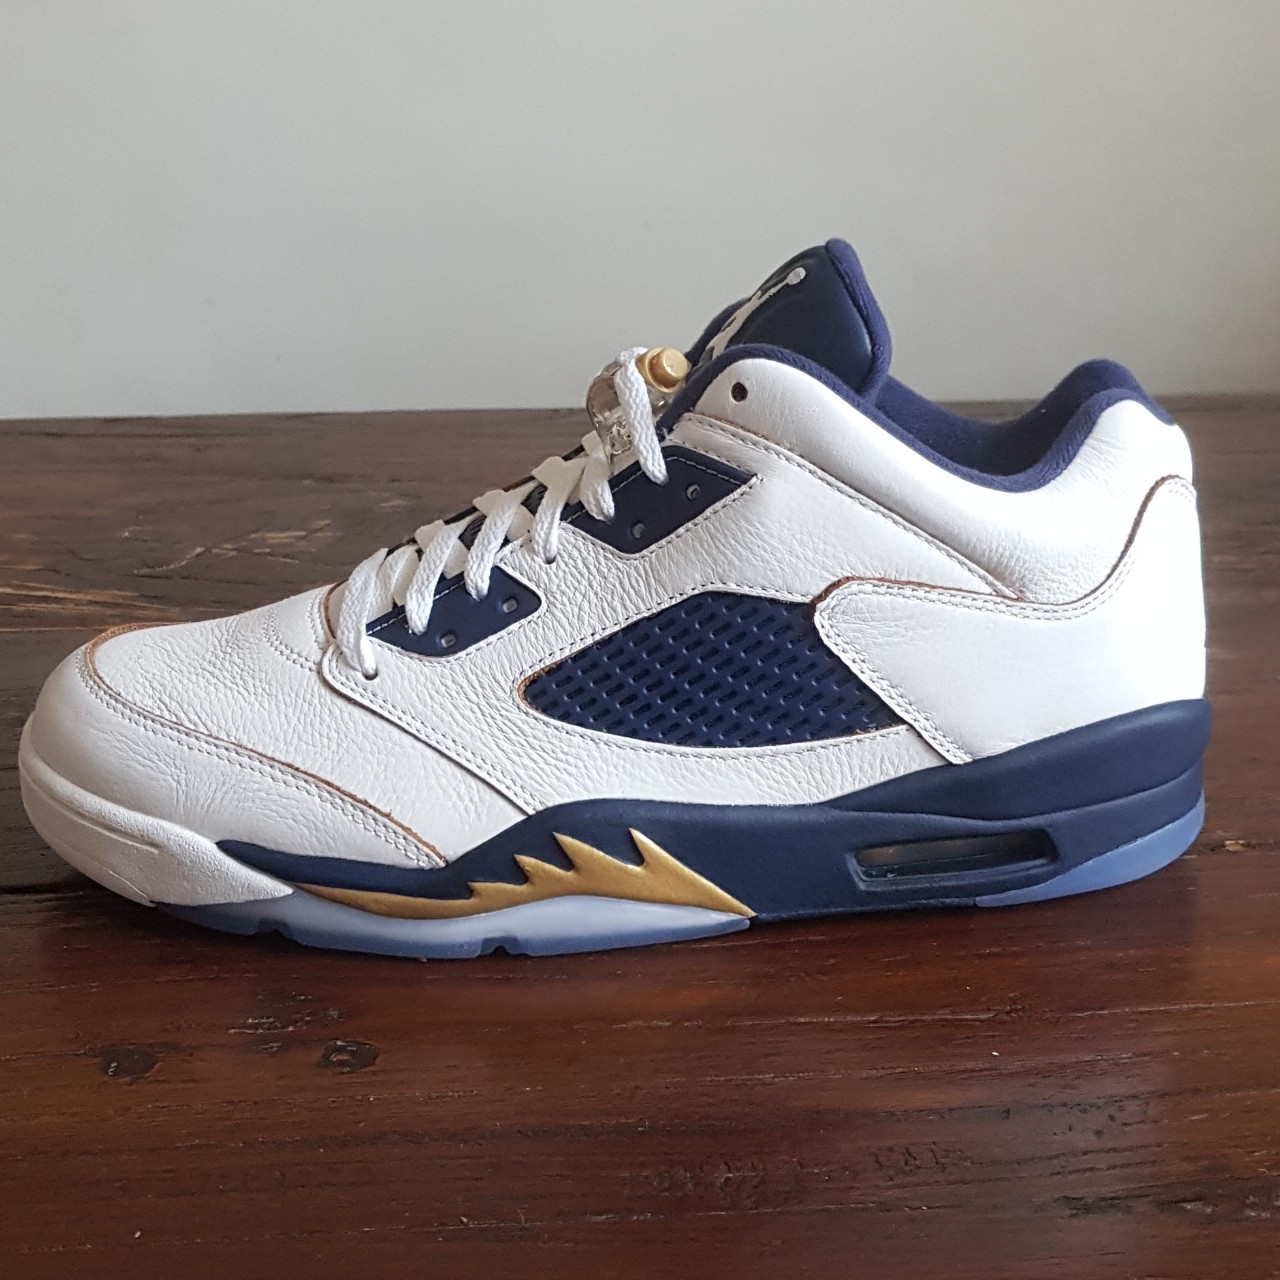 new products e7ace 8f40d Nike Air Jordan Retro 5 Low